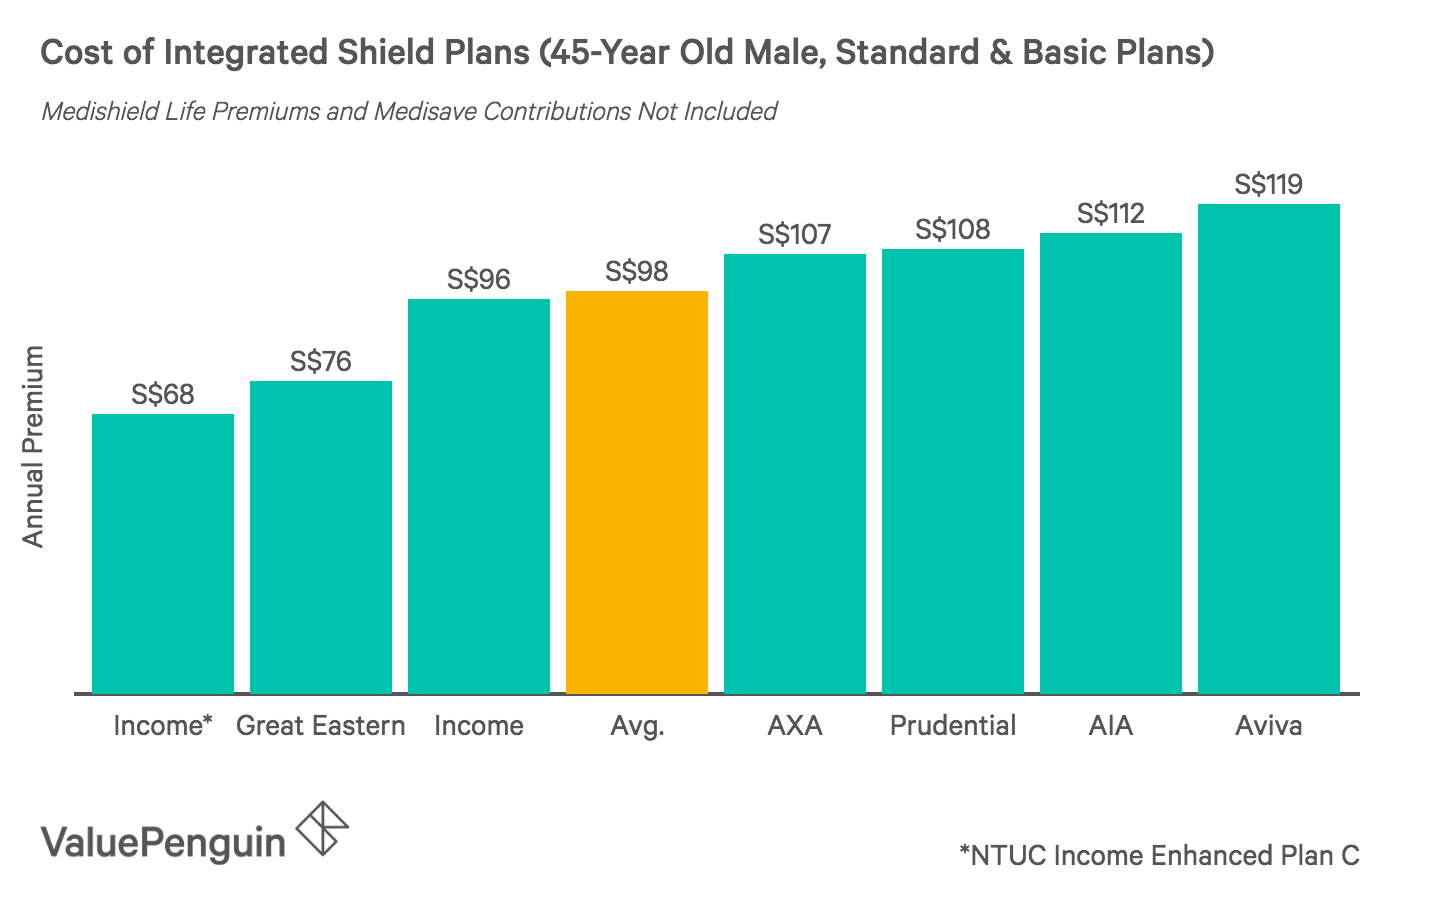 This graph shows the cost of Standard ISP plans in Singapore